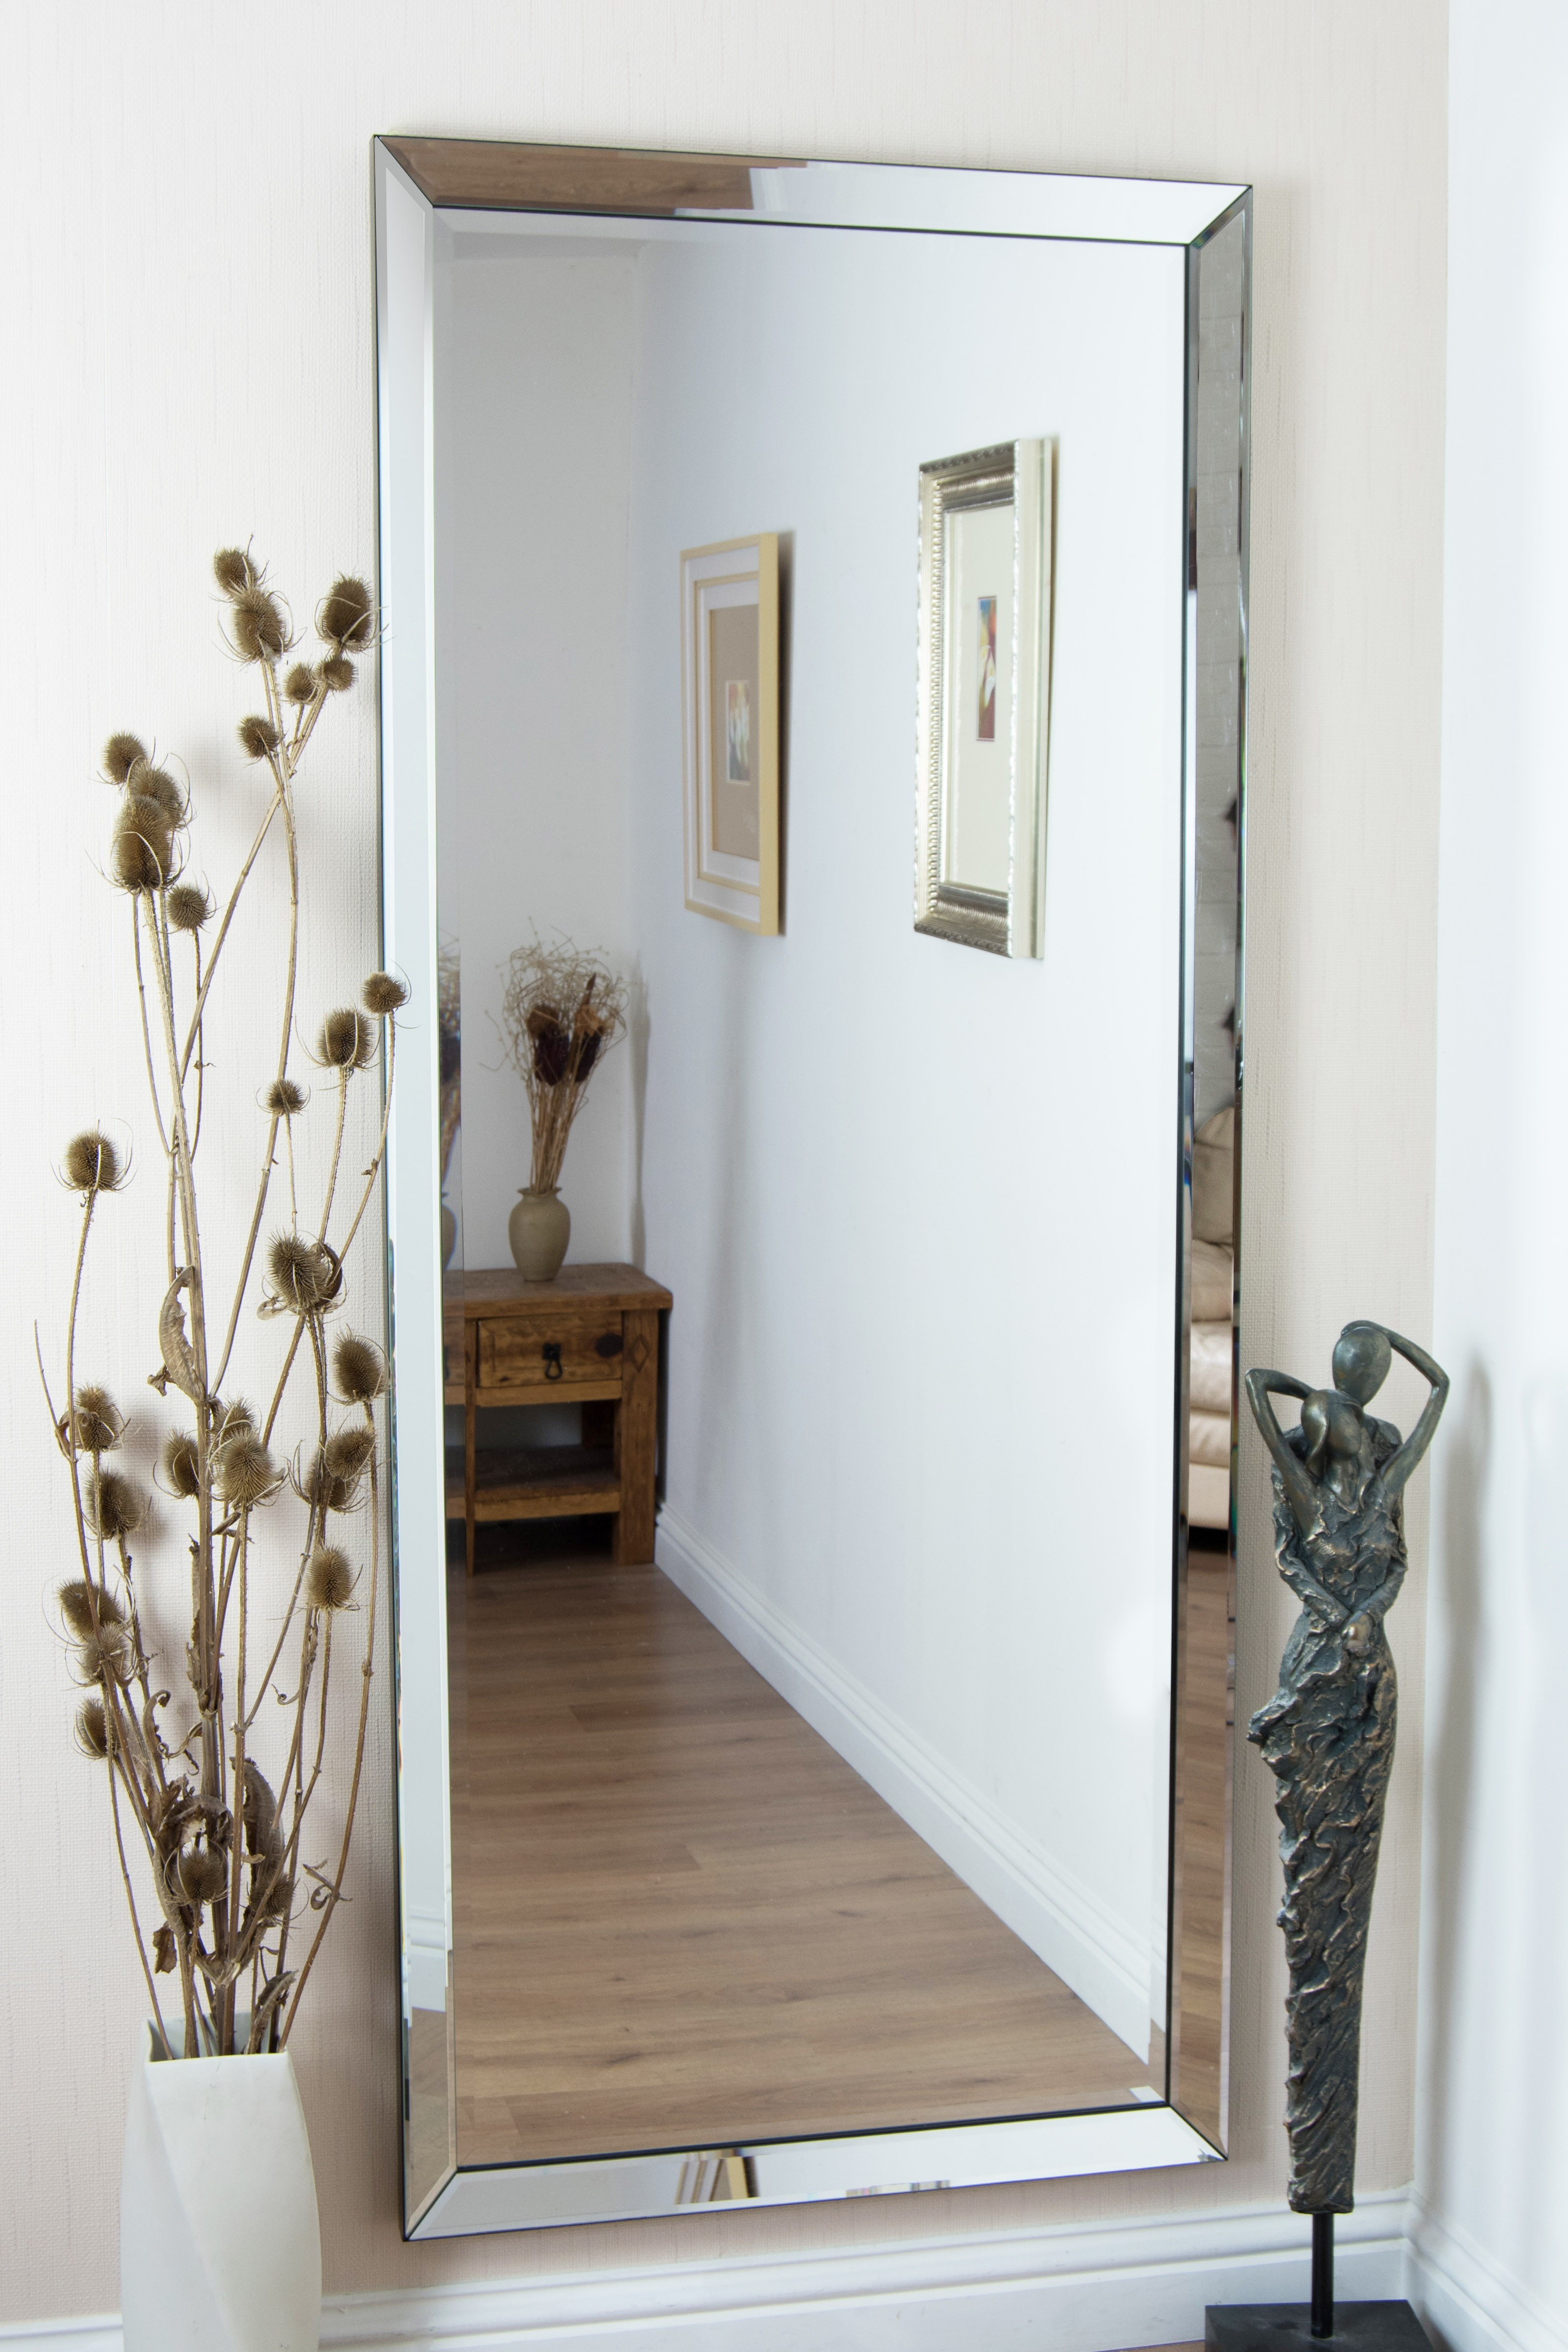 Top 34 Terrific Beveled Wall Mirror White Large Frameless Inside Modern & Contemporary Beveled Wall Mirrors (View 29 of 30)